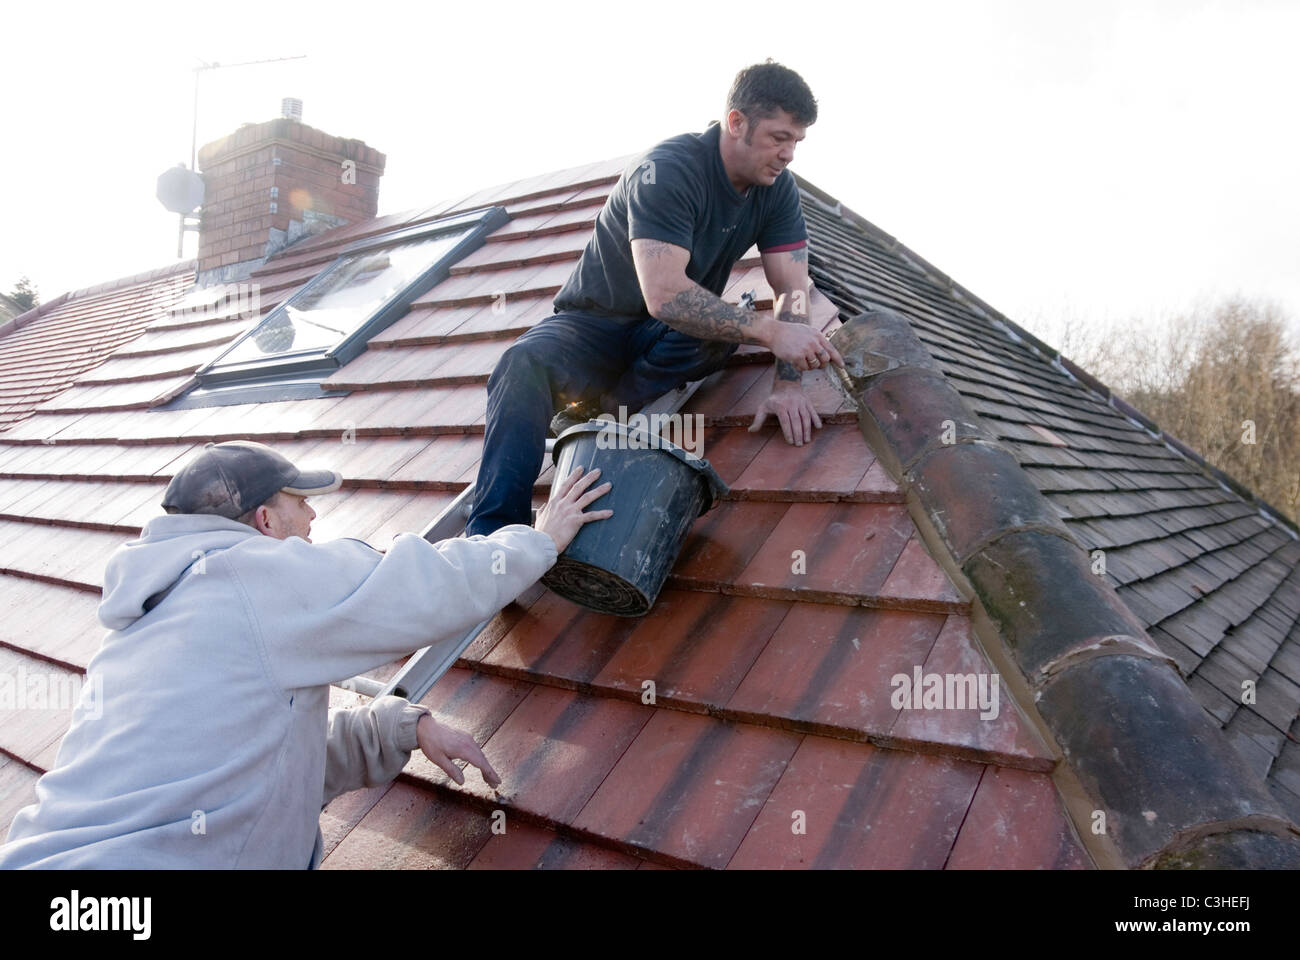 Roofer Laying Ridge Tiles With Mortar Completing Re